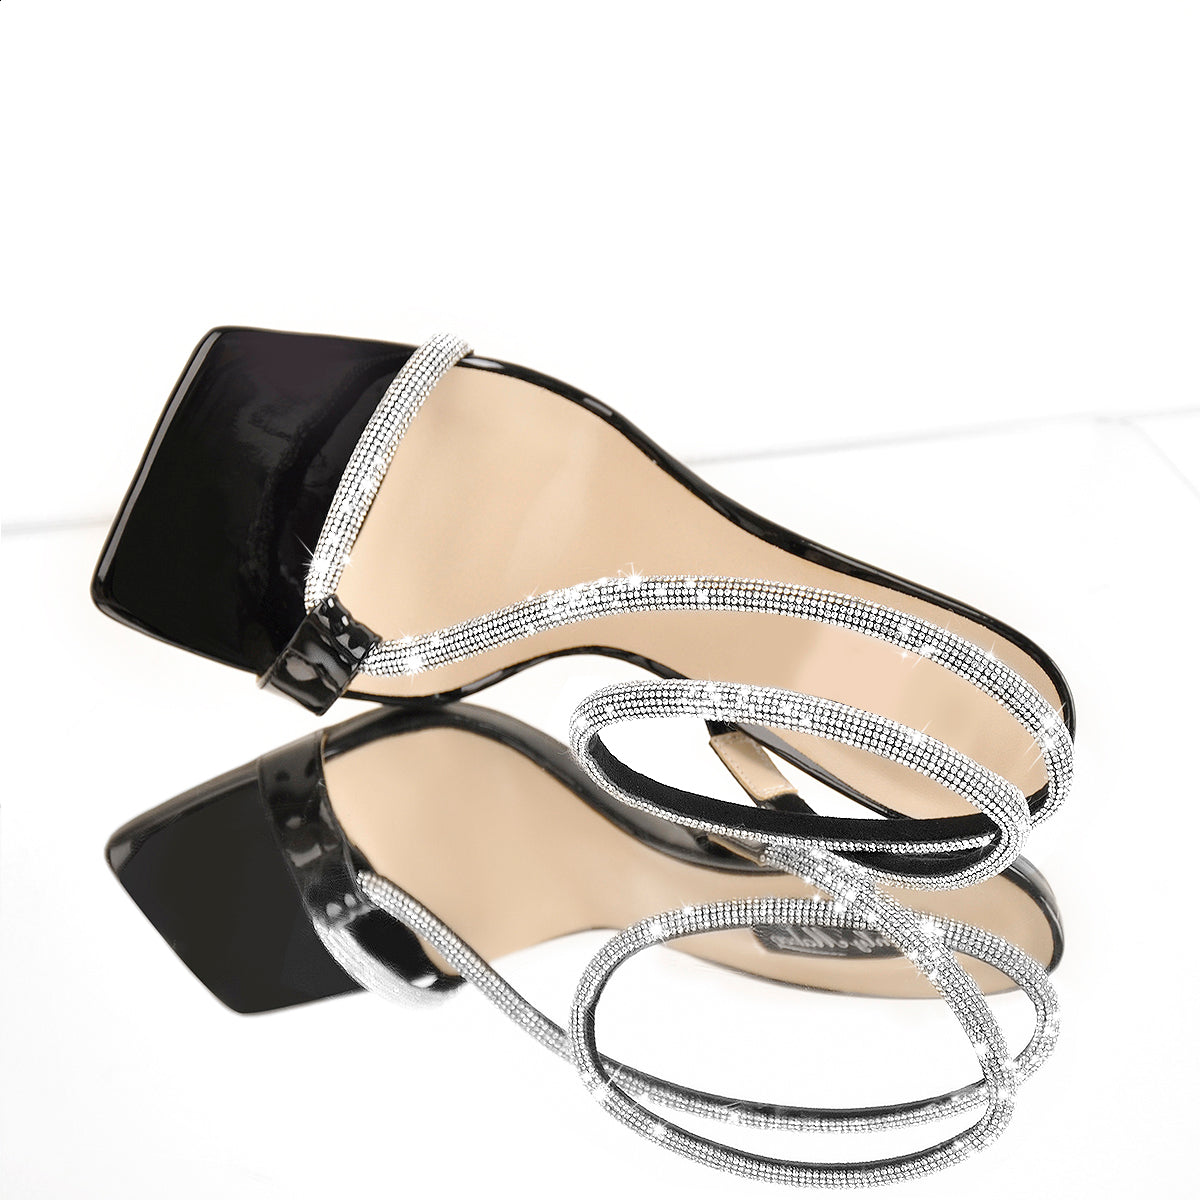 Black Patent Leather Square Toe Ankle Strap Open Toe High Heels Sandals